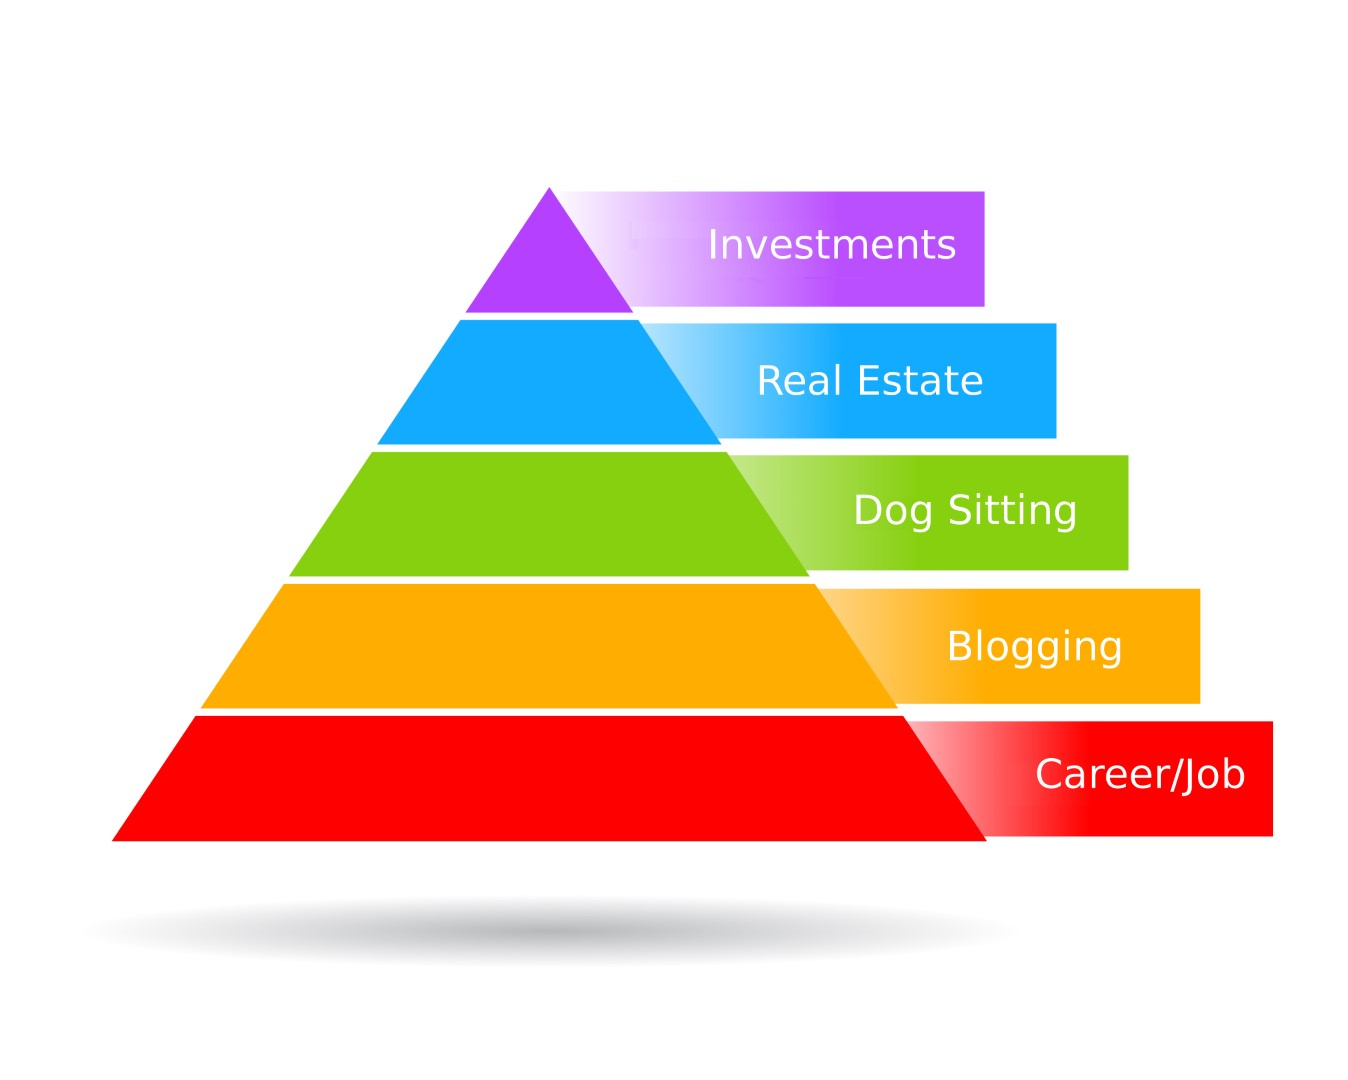 the passive income pyramid - The Passive Income Pyramid